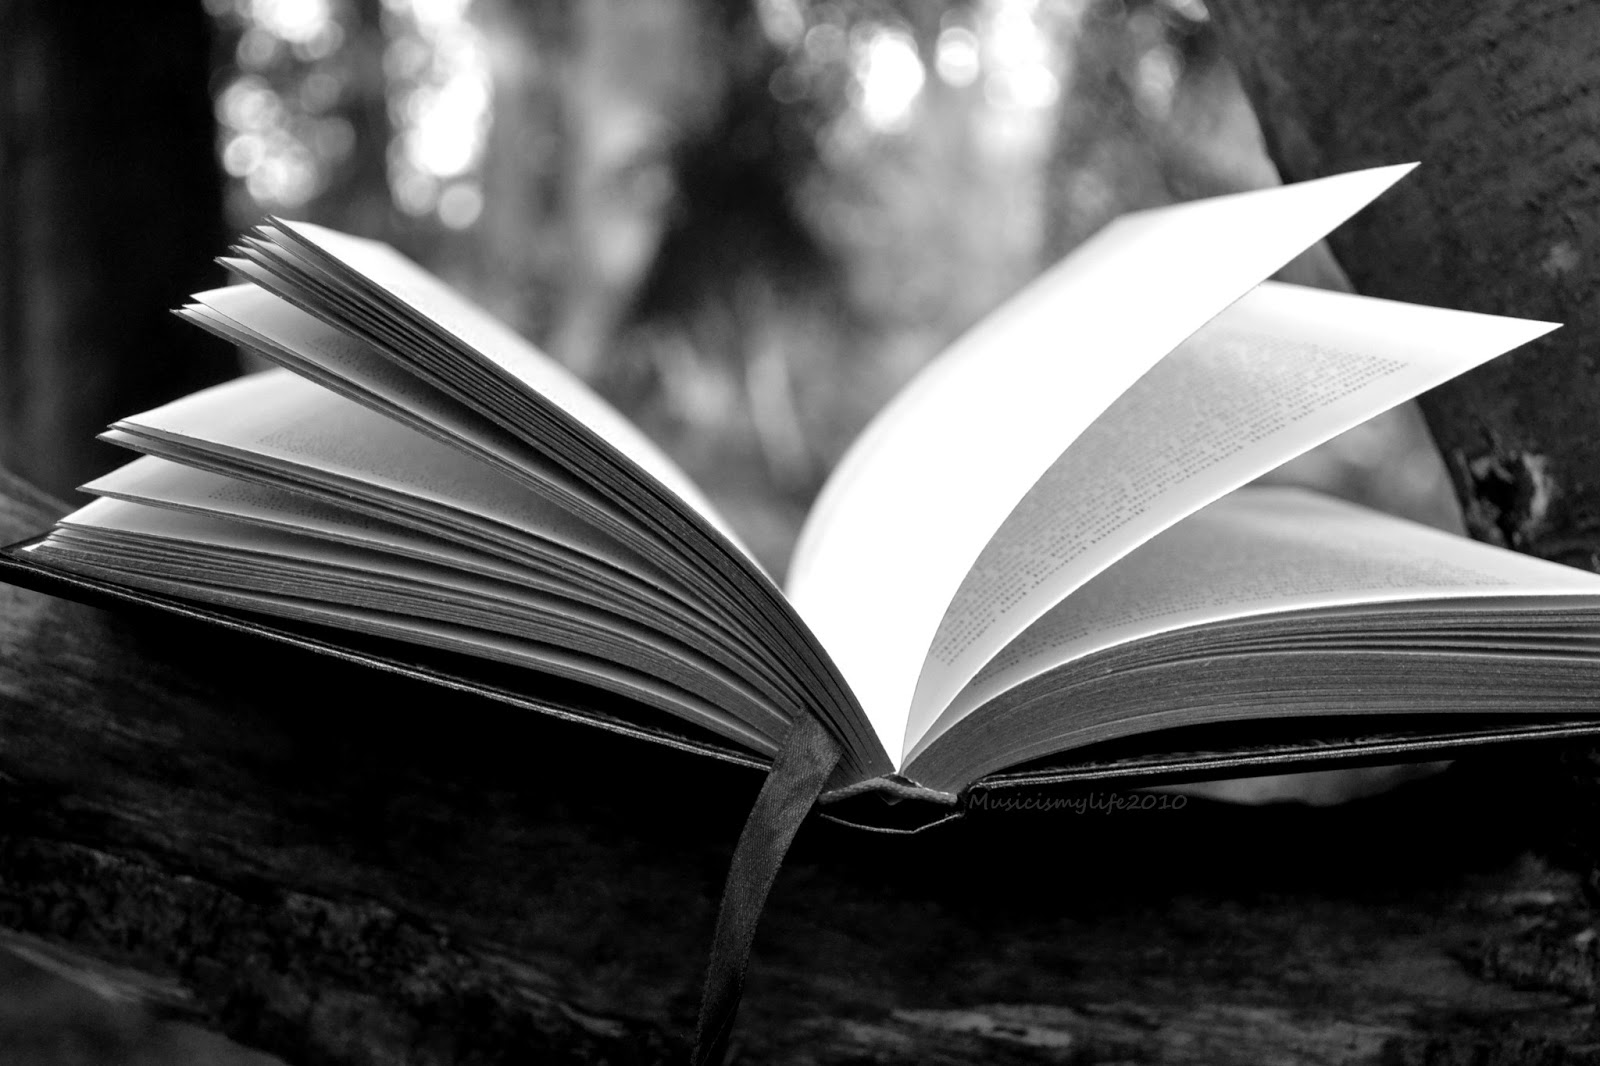 Black And White Book Photography | www.imgkid.com - The ...